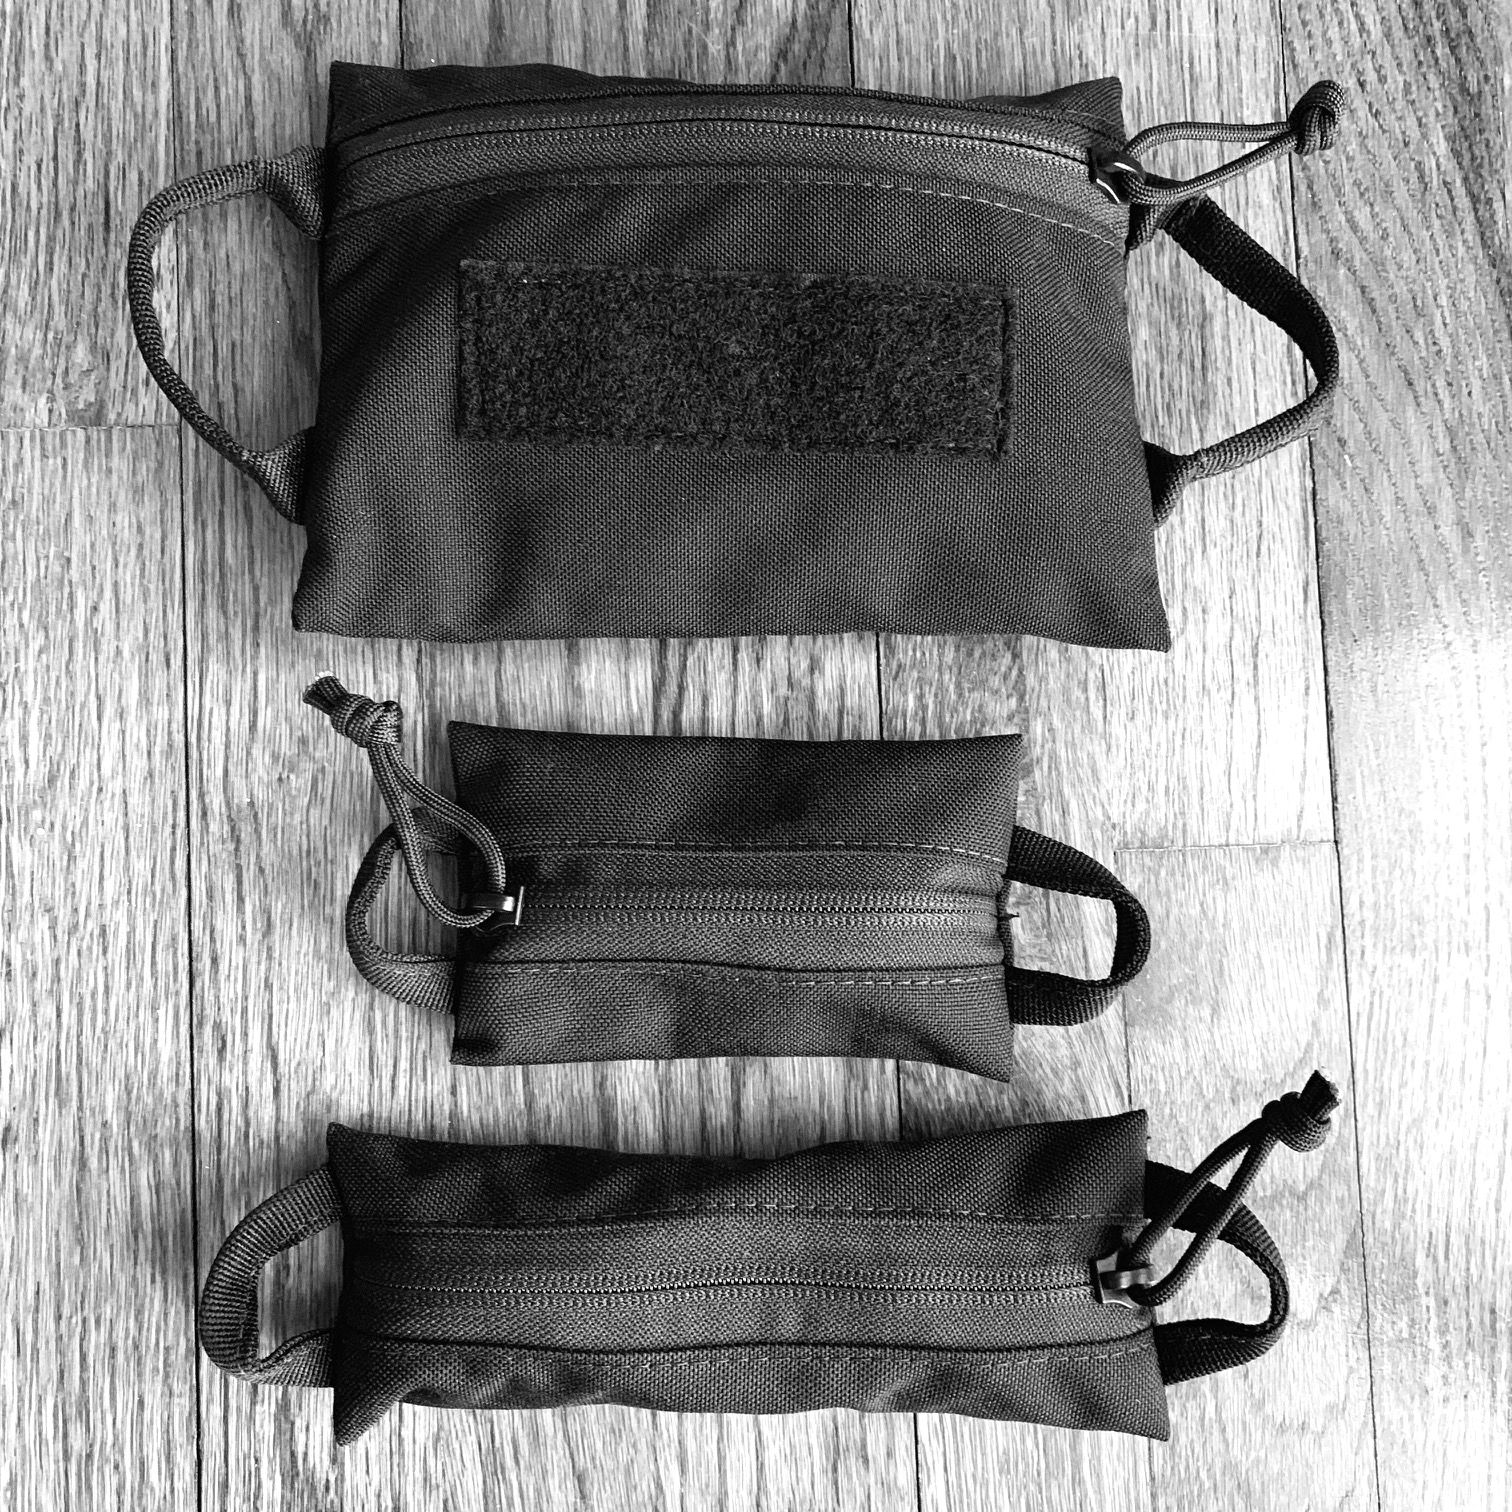 The 3 pouches packing with my stuff.